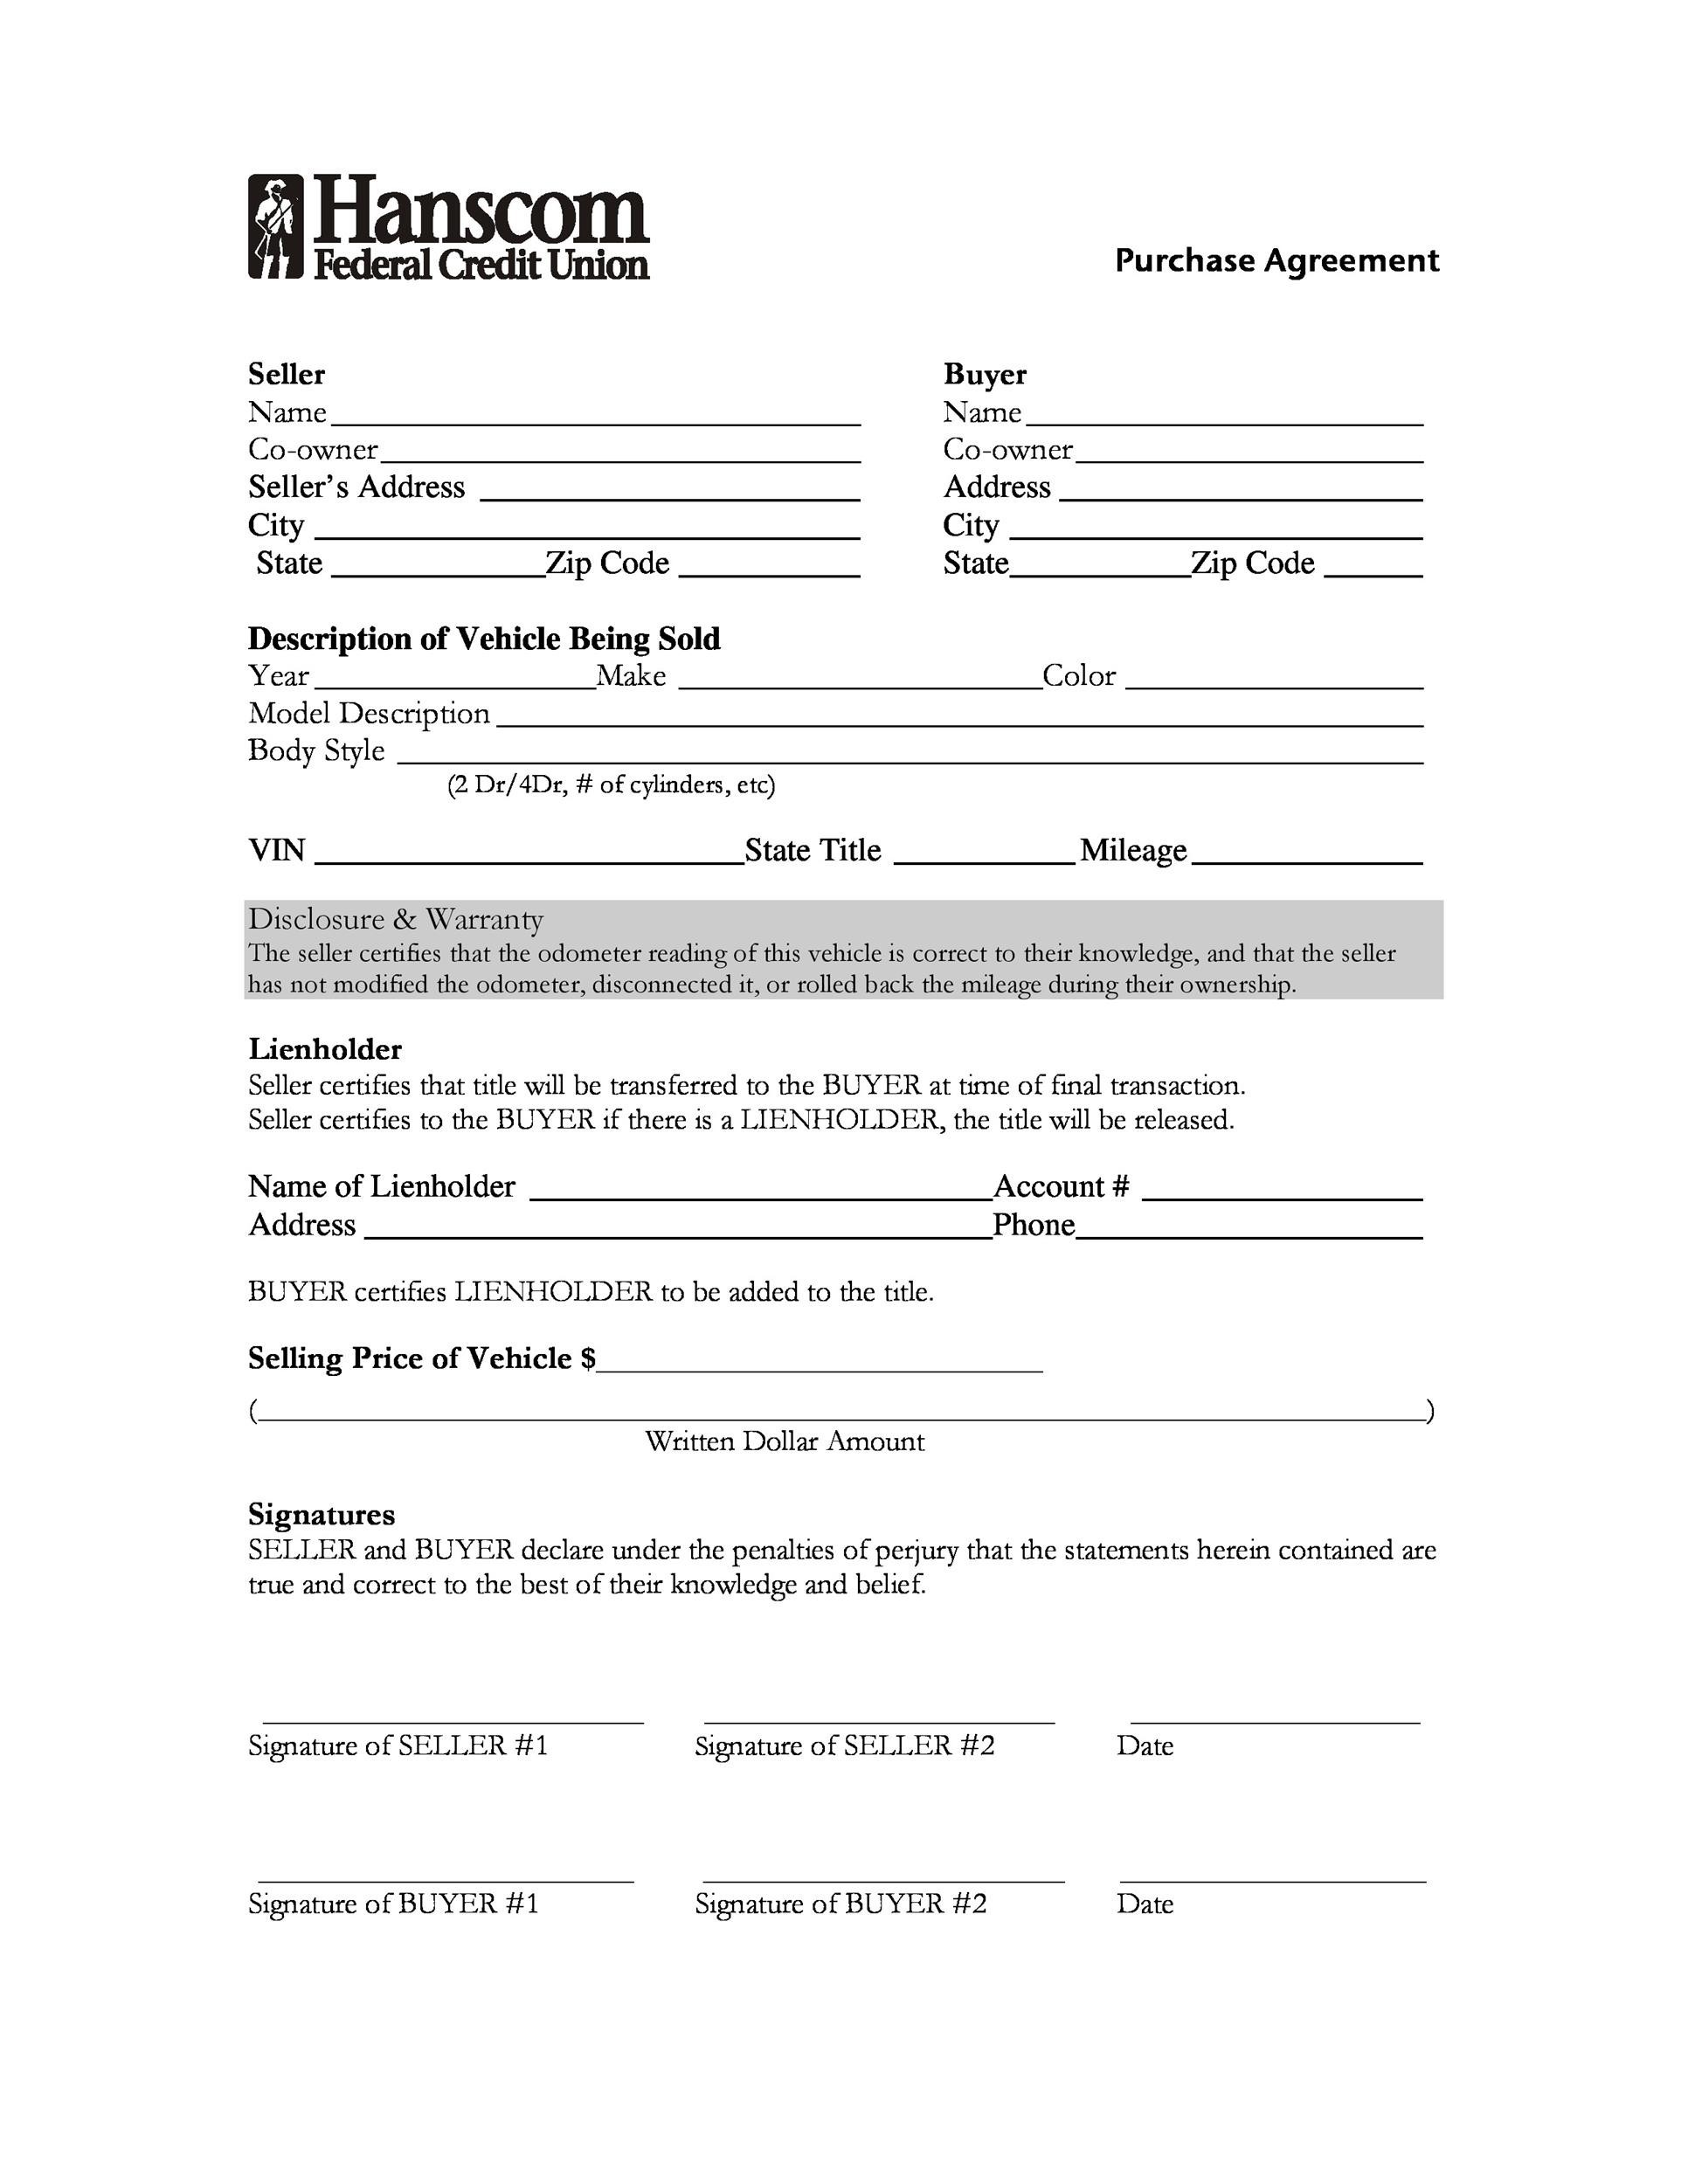 Free Vehicle Purchase Agreement 02